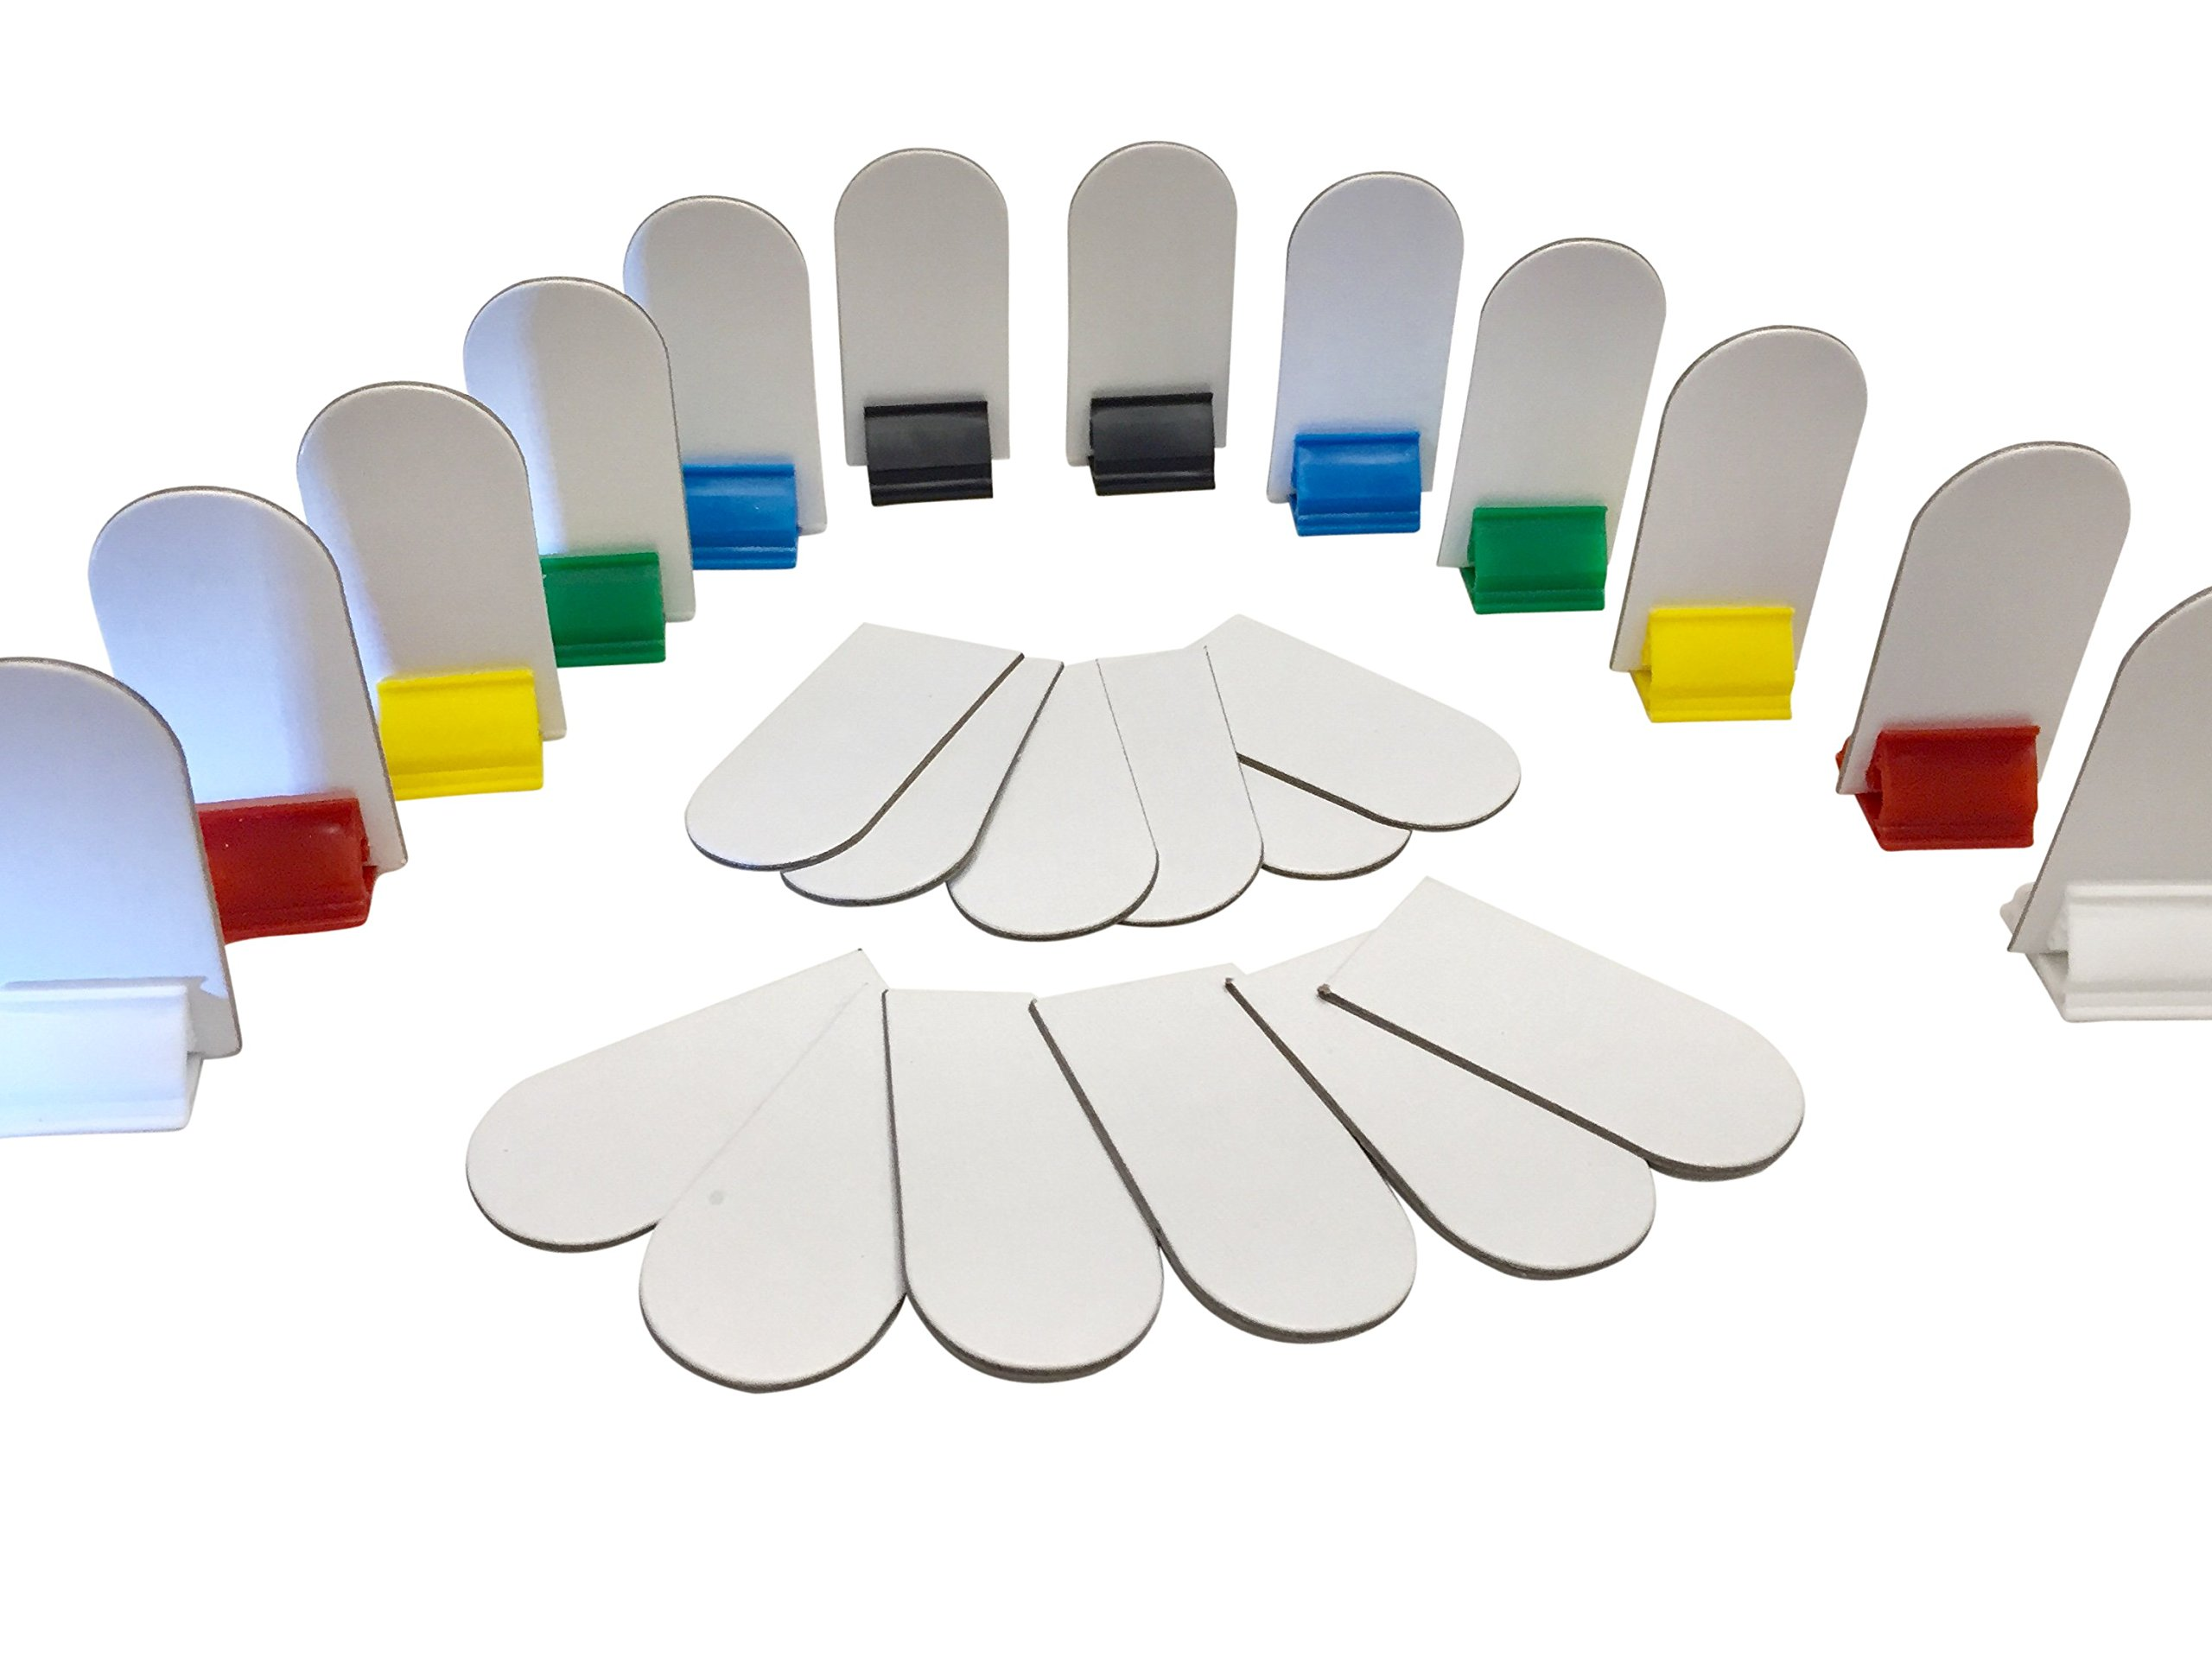 Game Board Markers - 12 Stands Plus 24 White Die Cut Cards - Board Game Card Stand -DIY Game Board Pieces - Yardware etcetera by Yardware etcetera